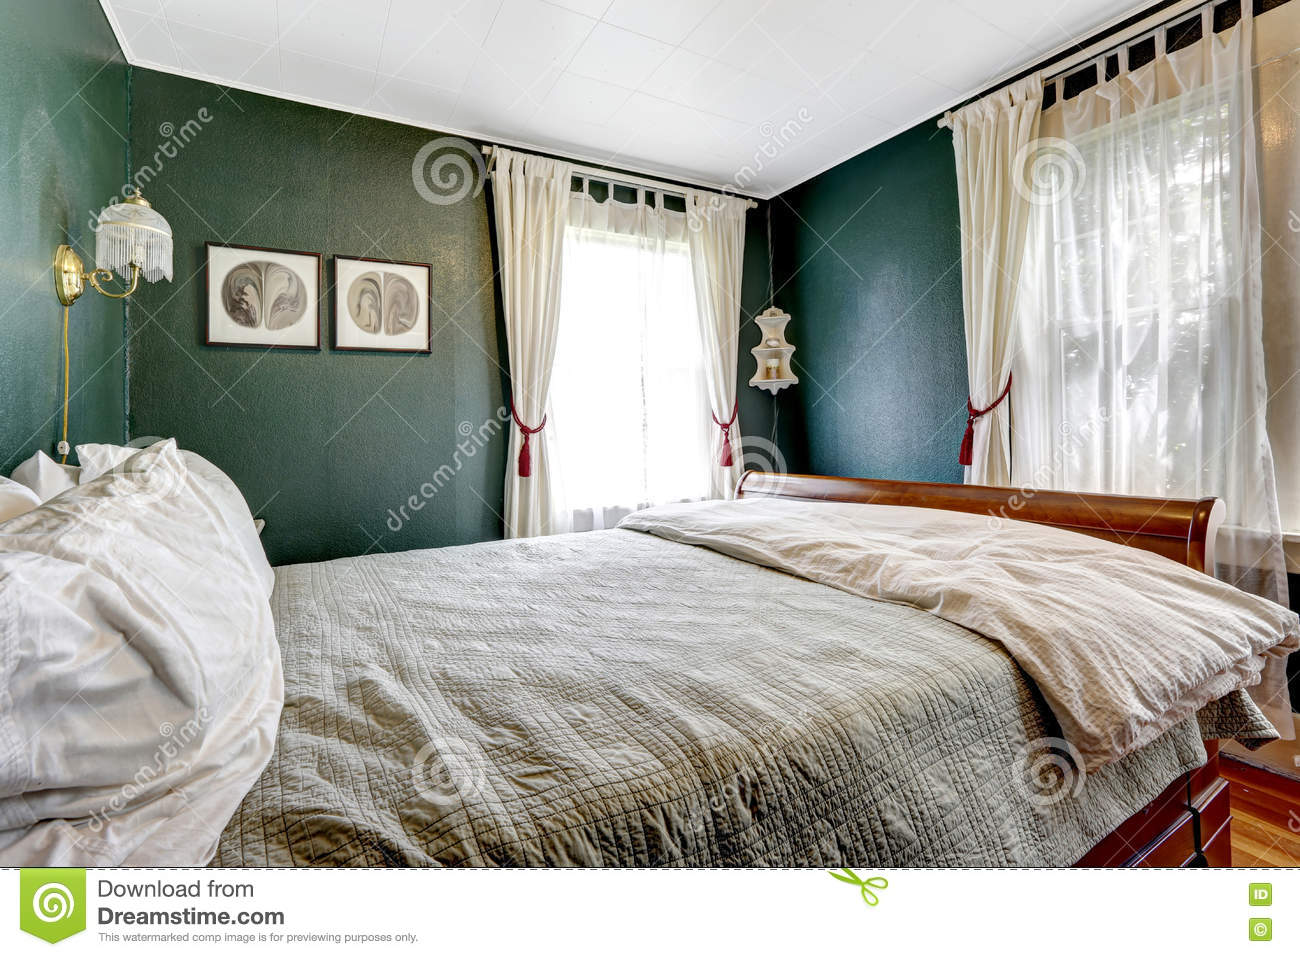 Small Bedroom With Wooden Bed Dark Green Walls Stock Image Image Of Design Open 73906029